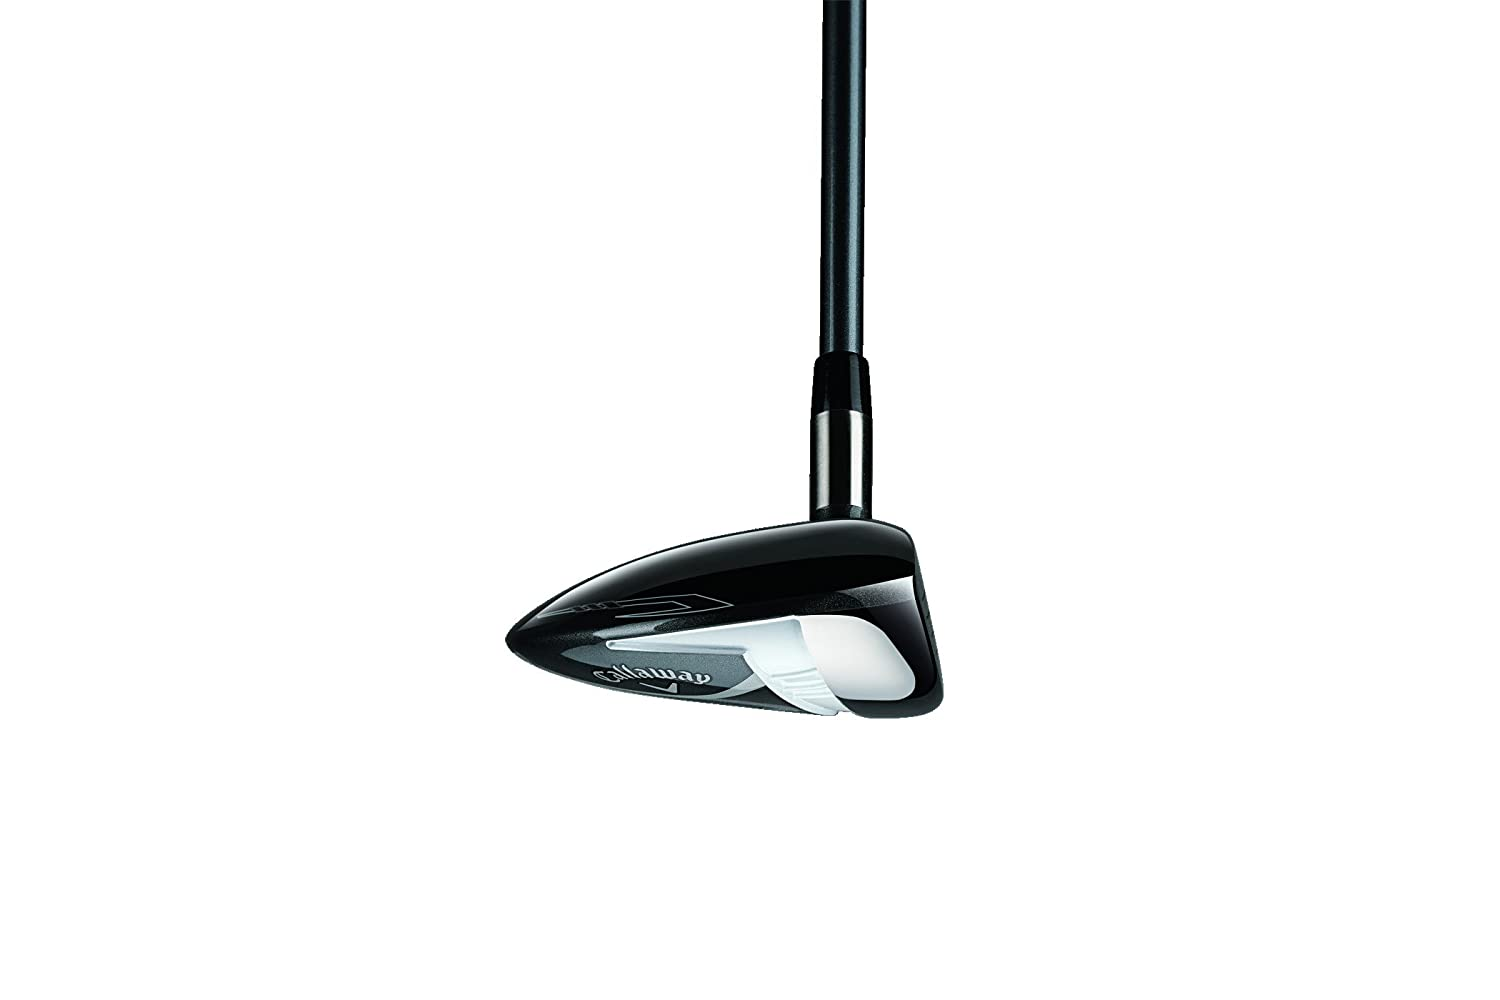 Amazon.com: Callaway X Series N15 Fairway Wood - Botas de ...